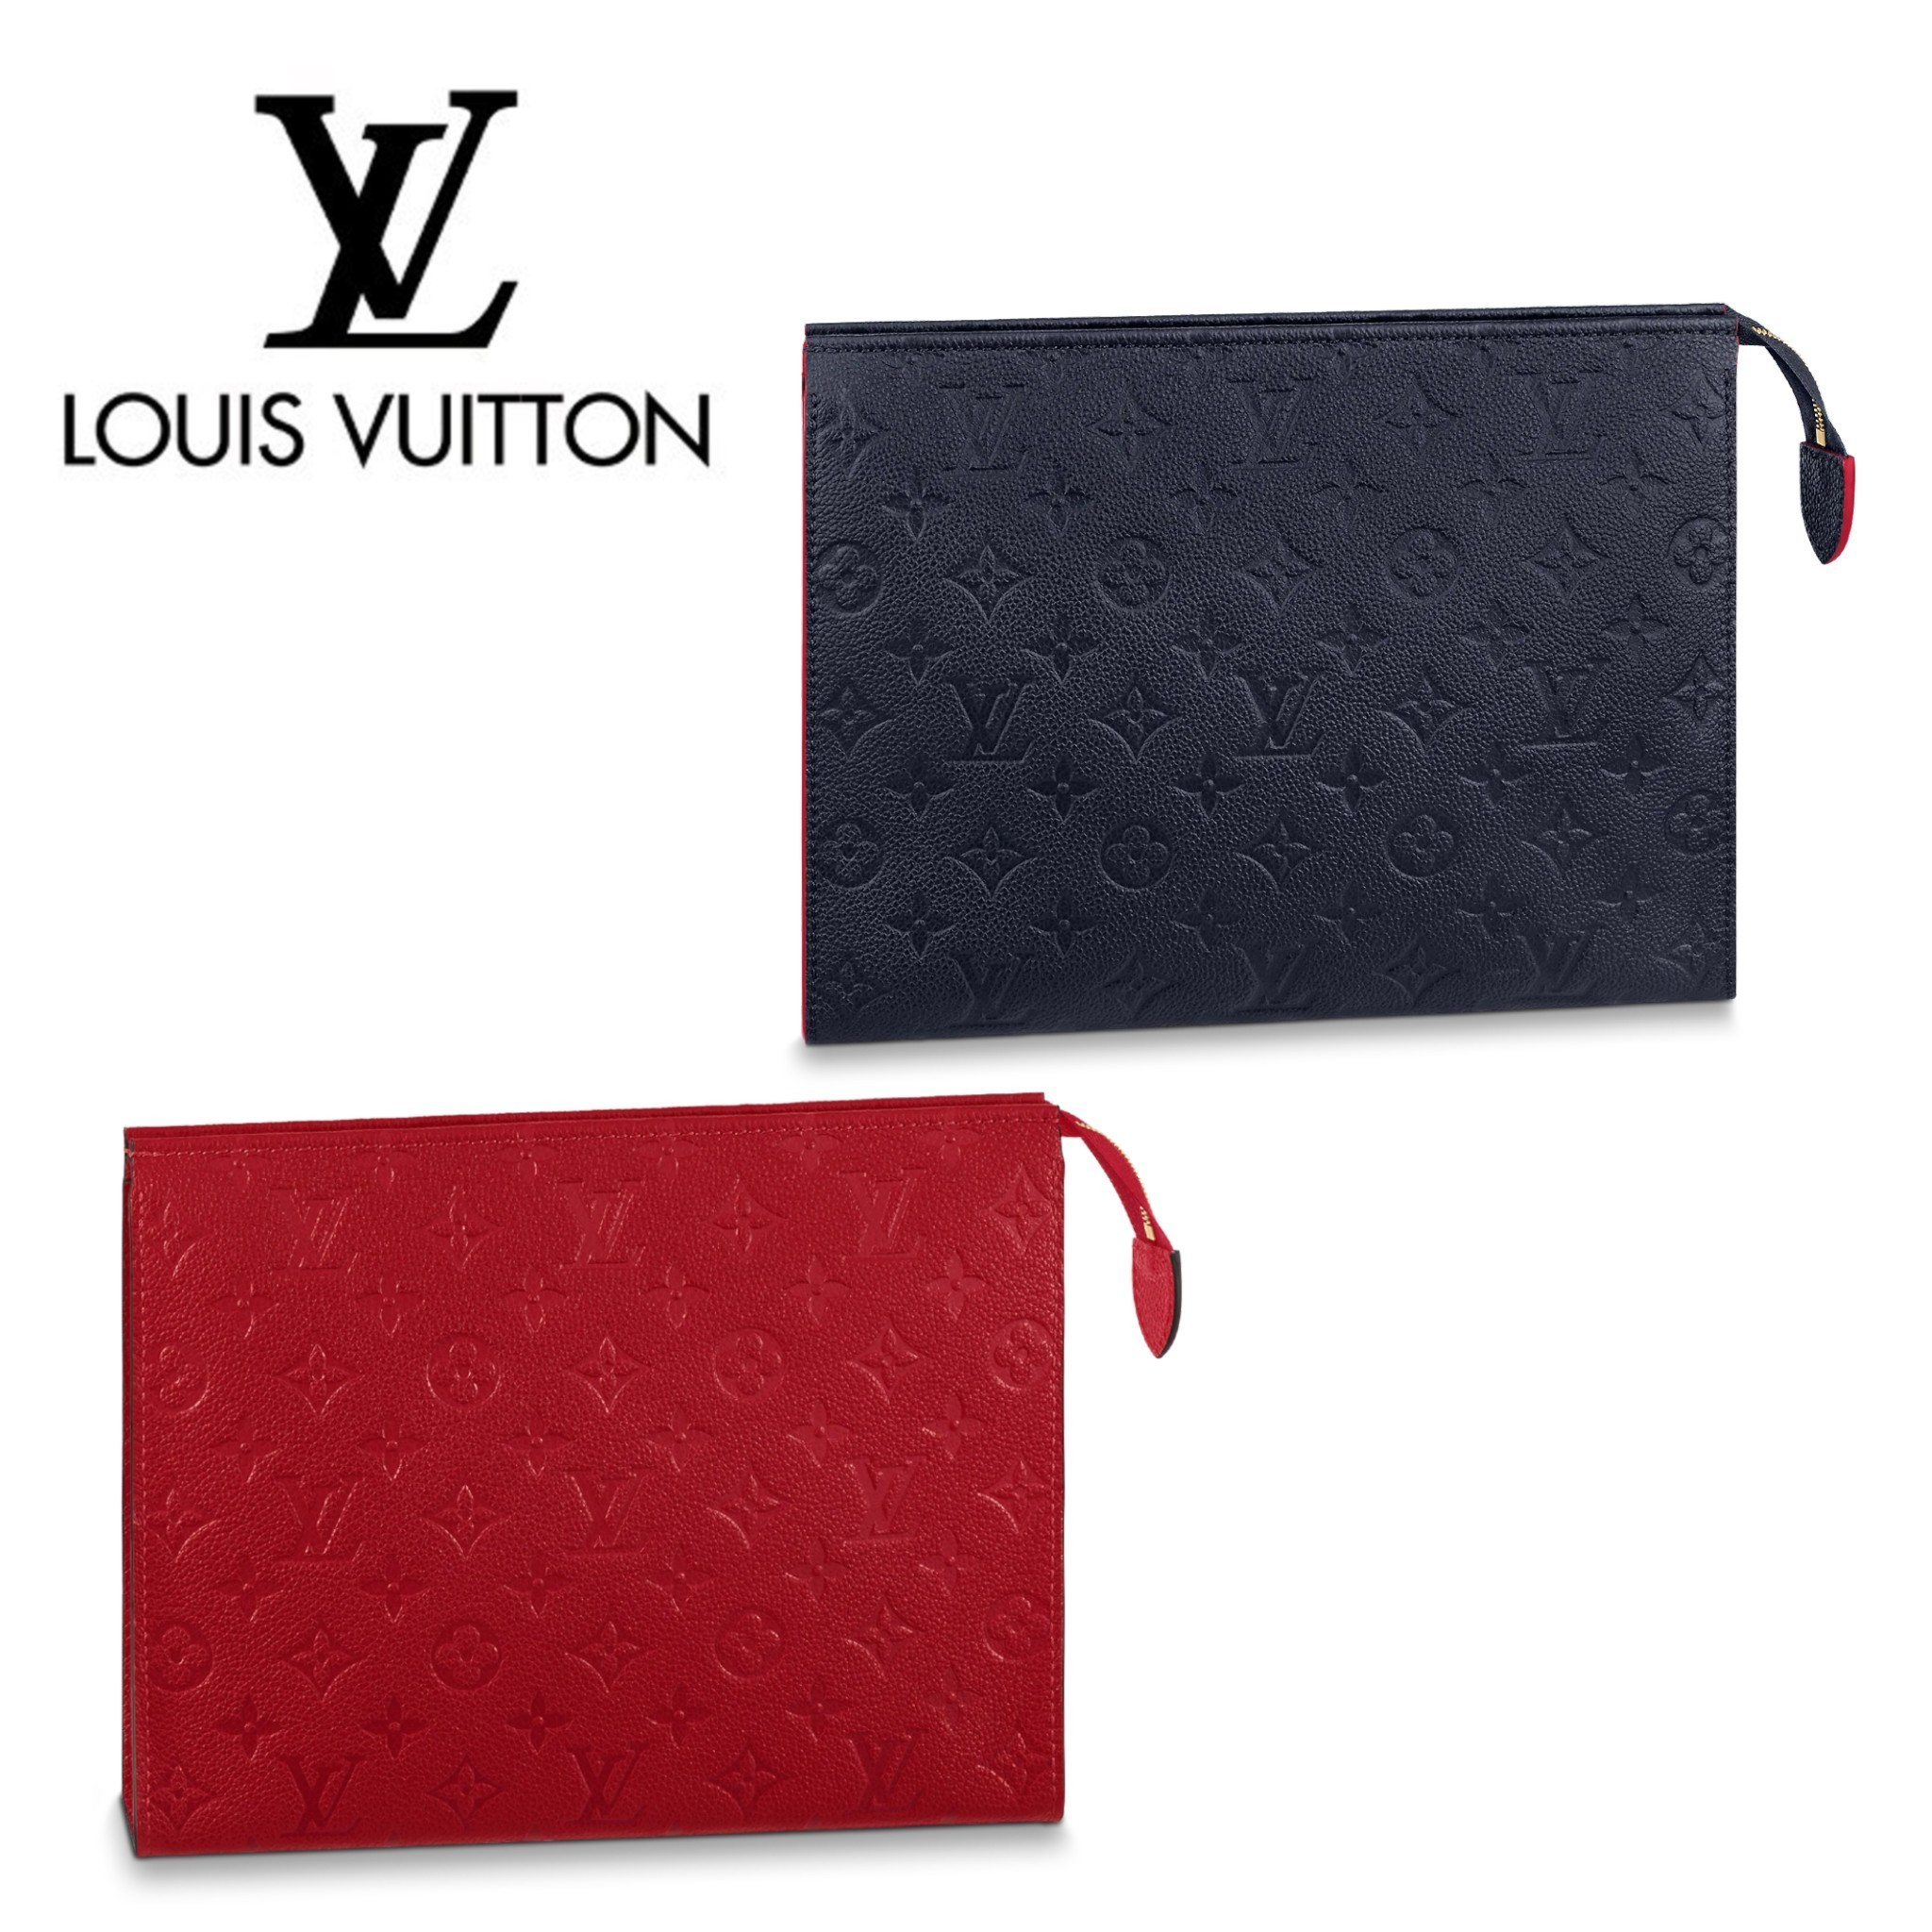 21SS ルイヴィトン 男女OK inバッグにも クラッチバッグ ポーチ (Louis Vuitton/ポーチ) M45666  M45665